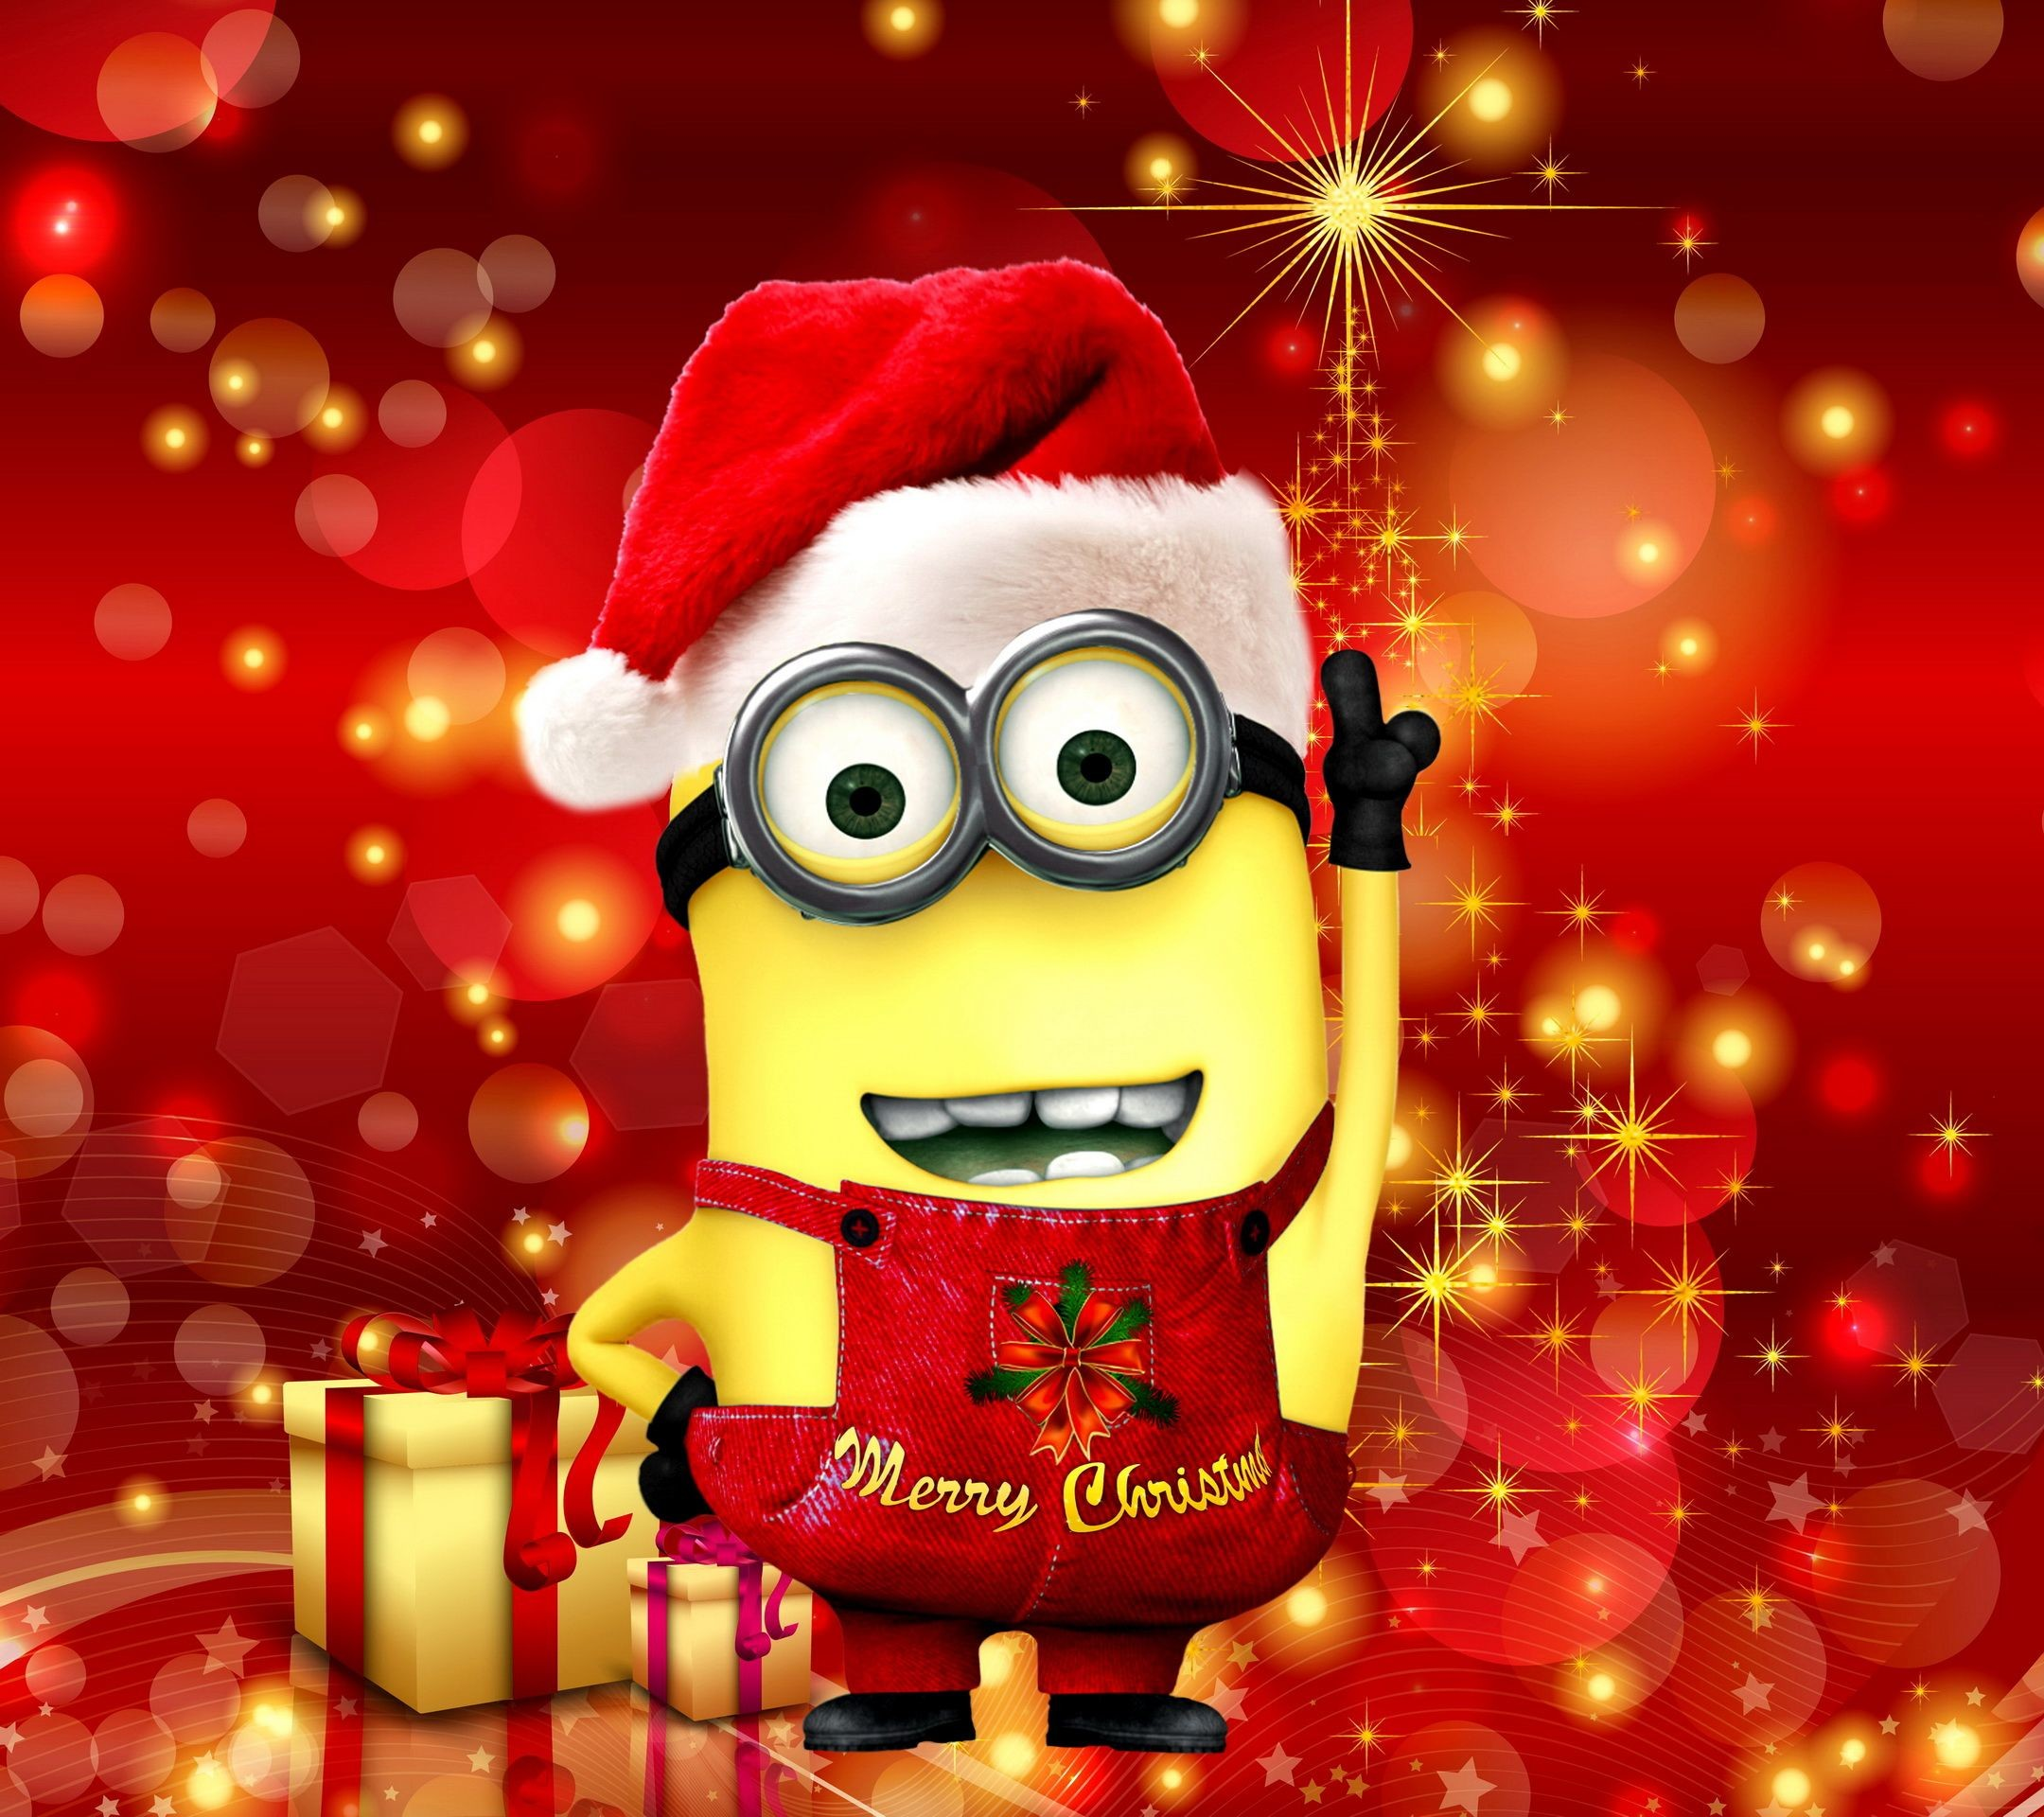 Res: 2160x1920, Merry Christmas minions images